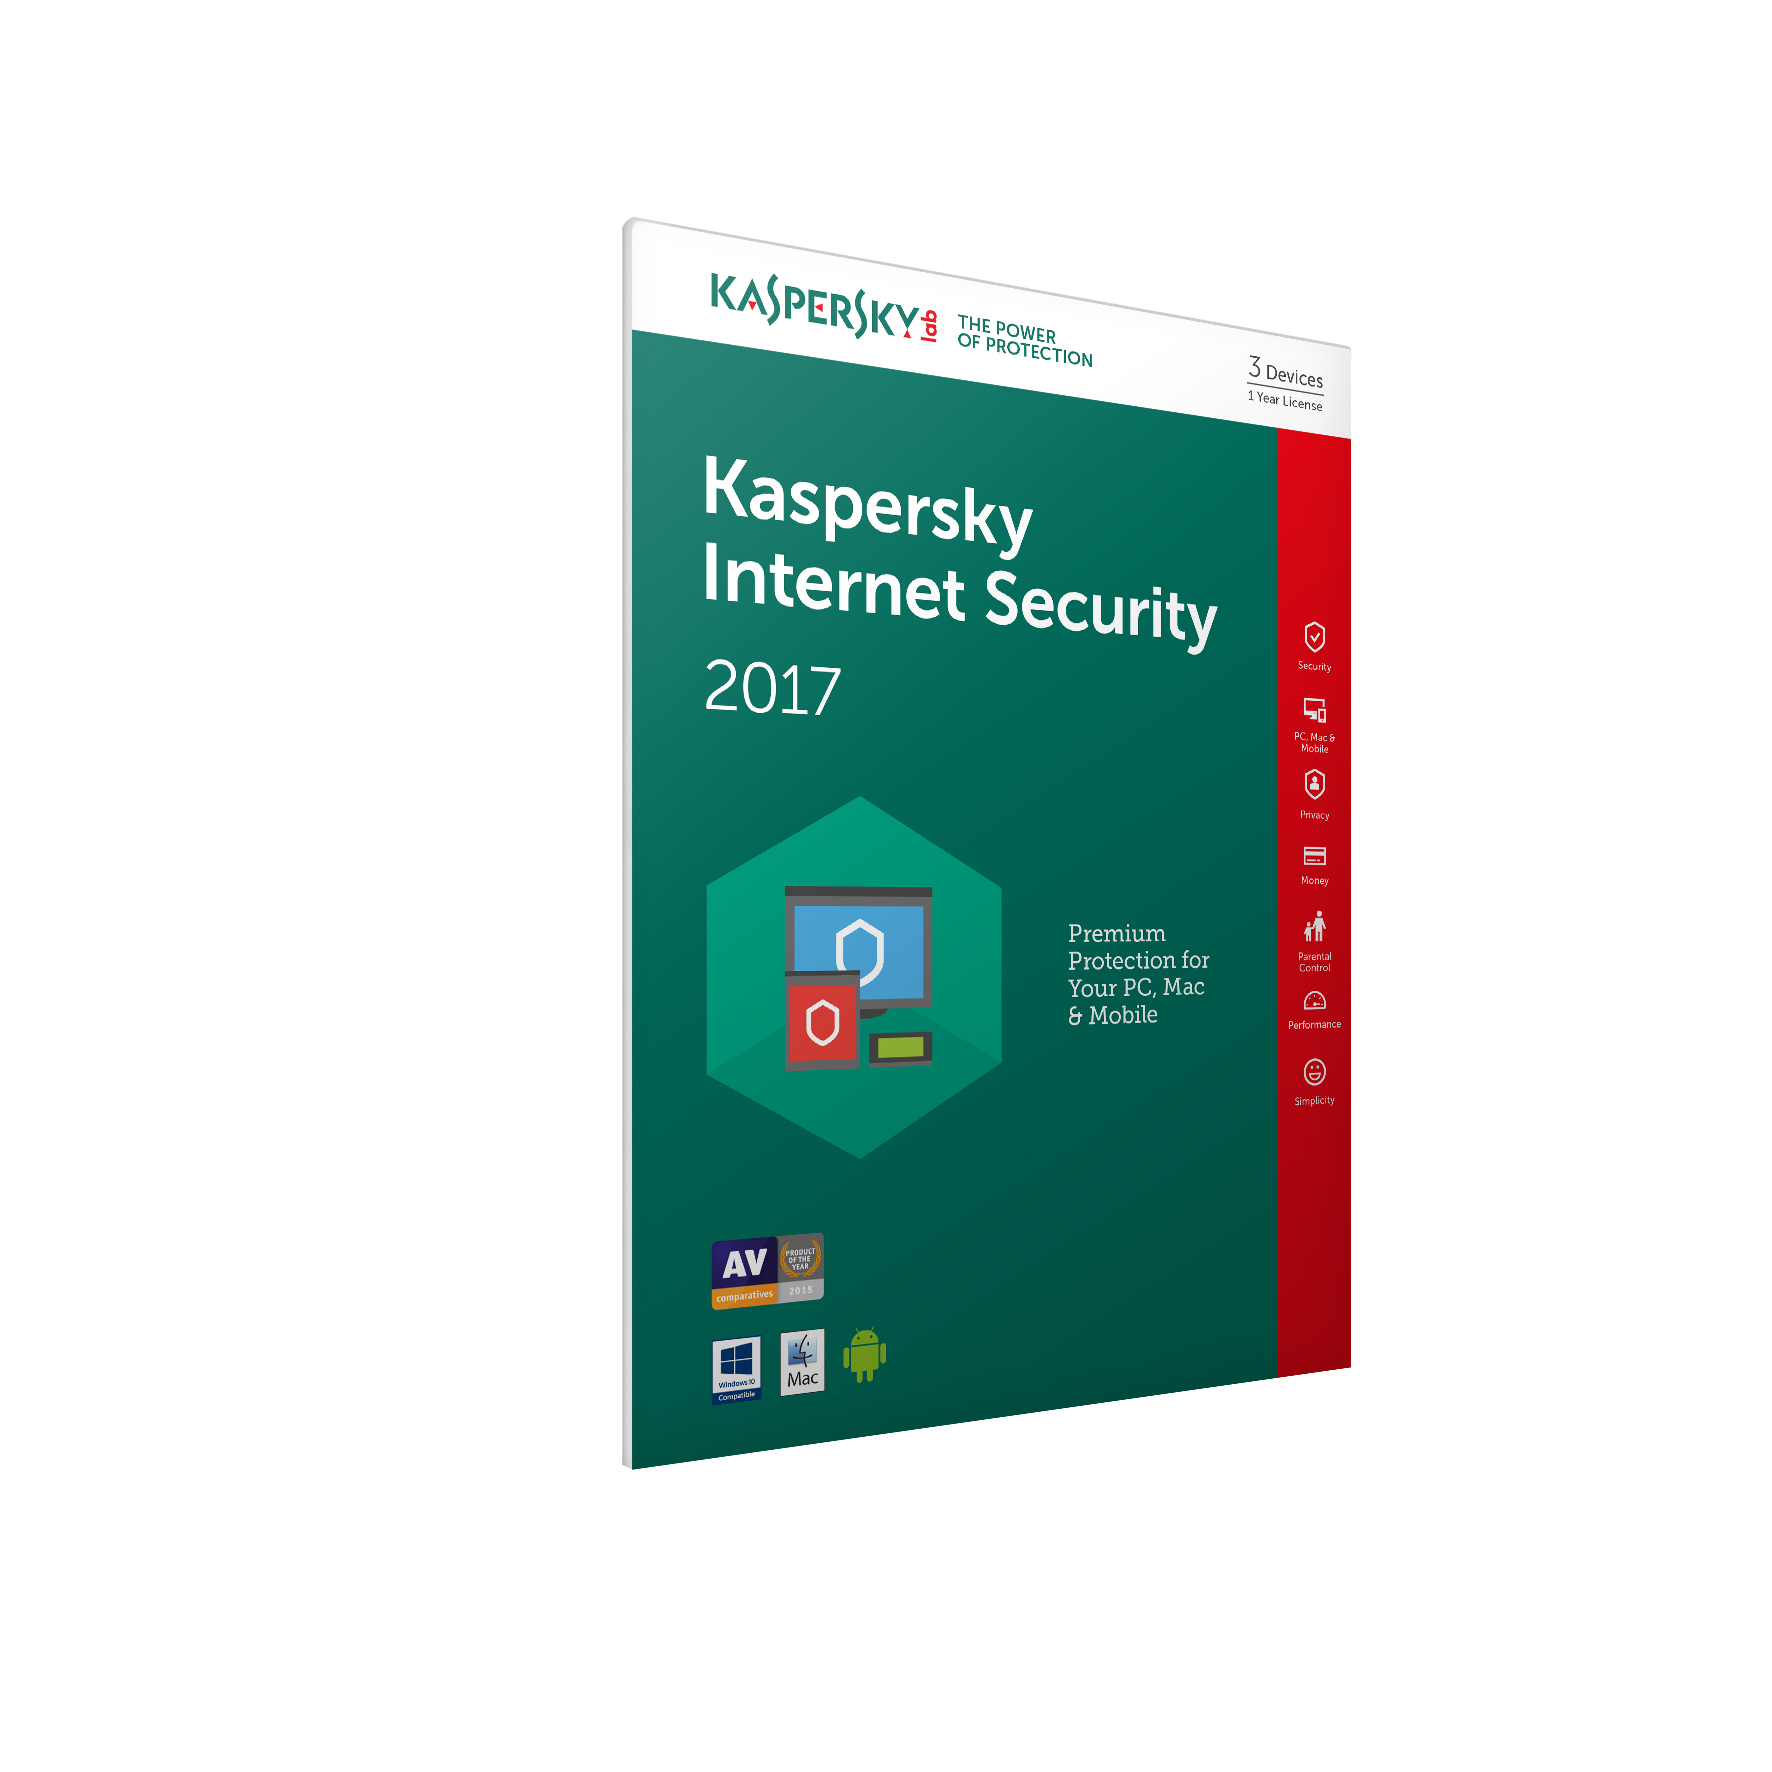 Kaspersky Lab Kaspersky Internet Security 2017 - 3 Devices 1 Year (Frustration Free Packaging)